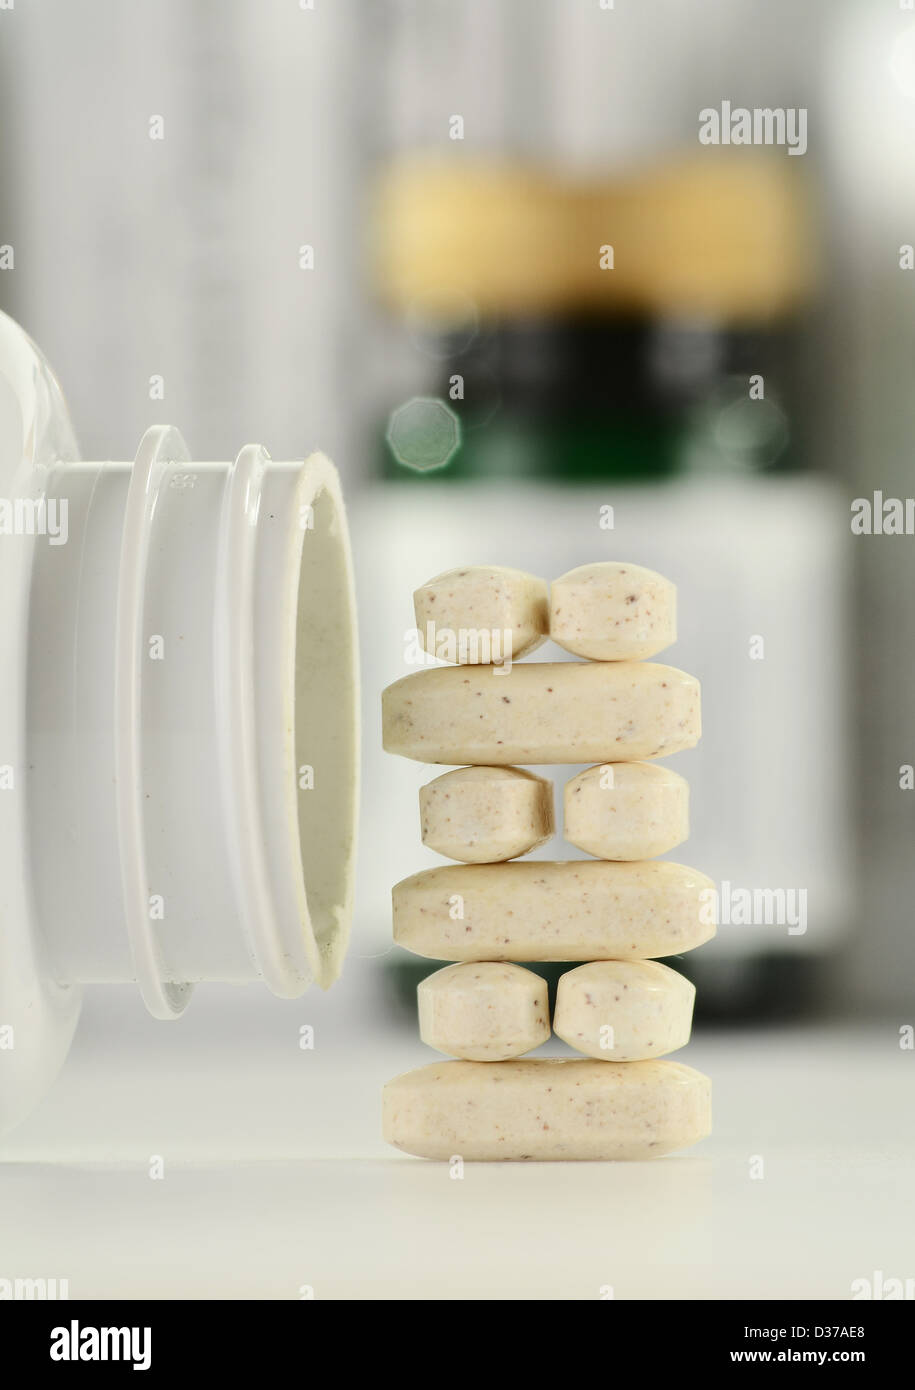 Composition with dietary supplement pills and containers - Stock Image